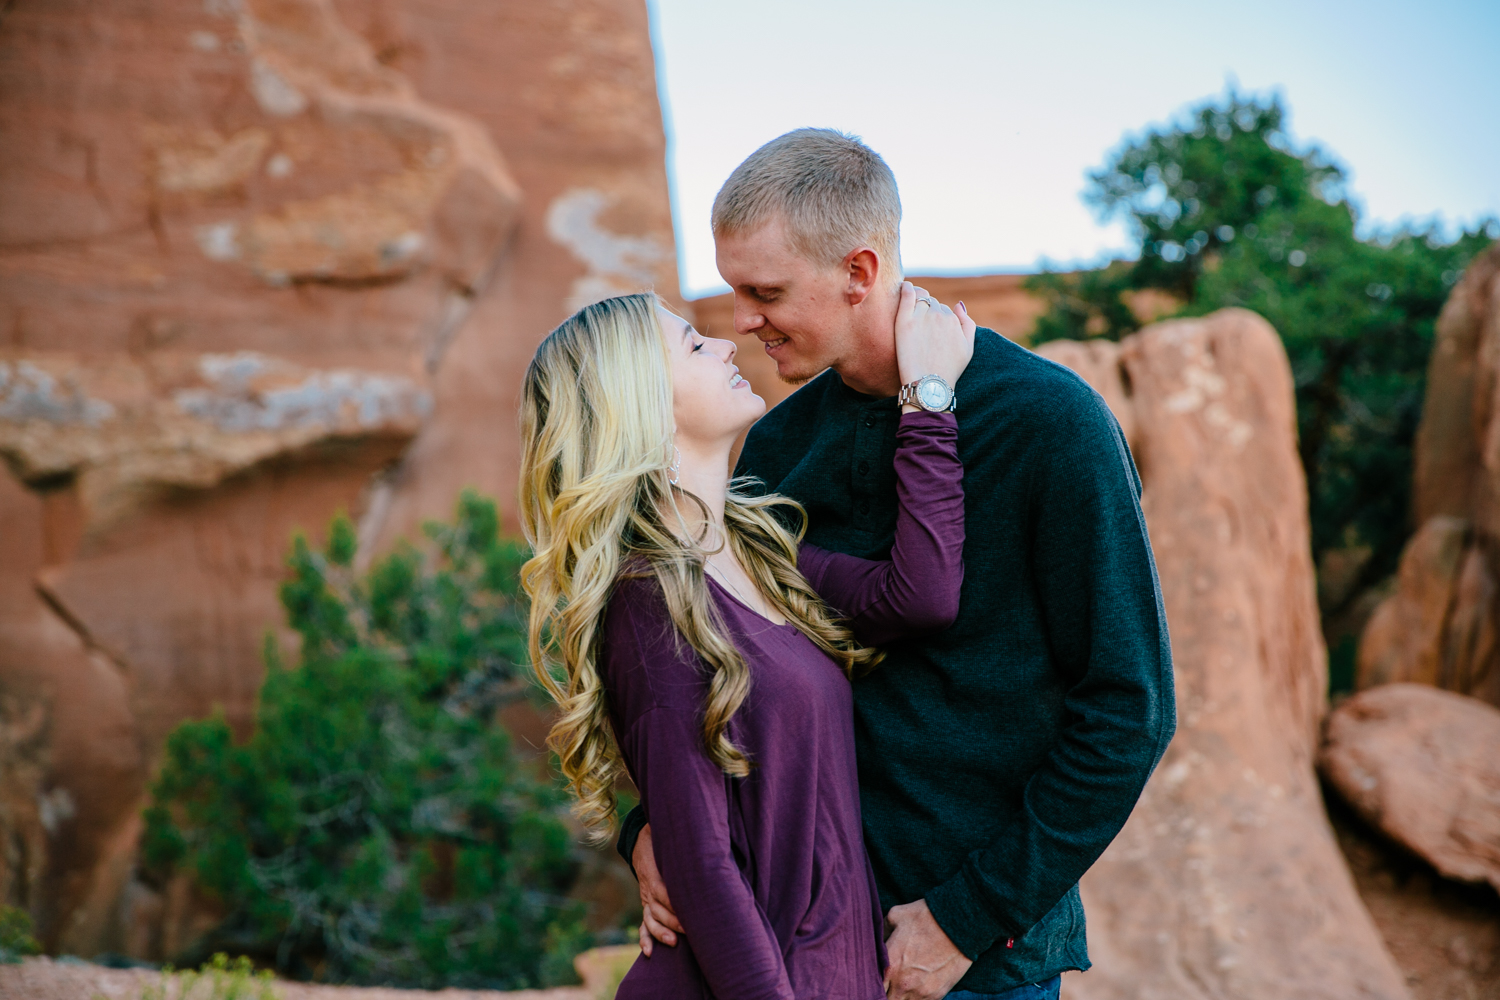 grand-junction-colorado-monument-wedding-photographer-engagements-16.jpg